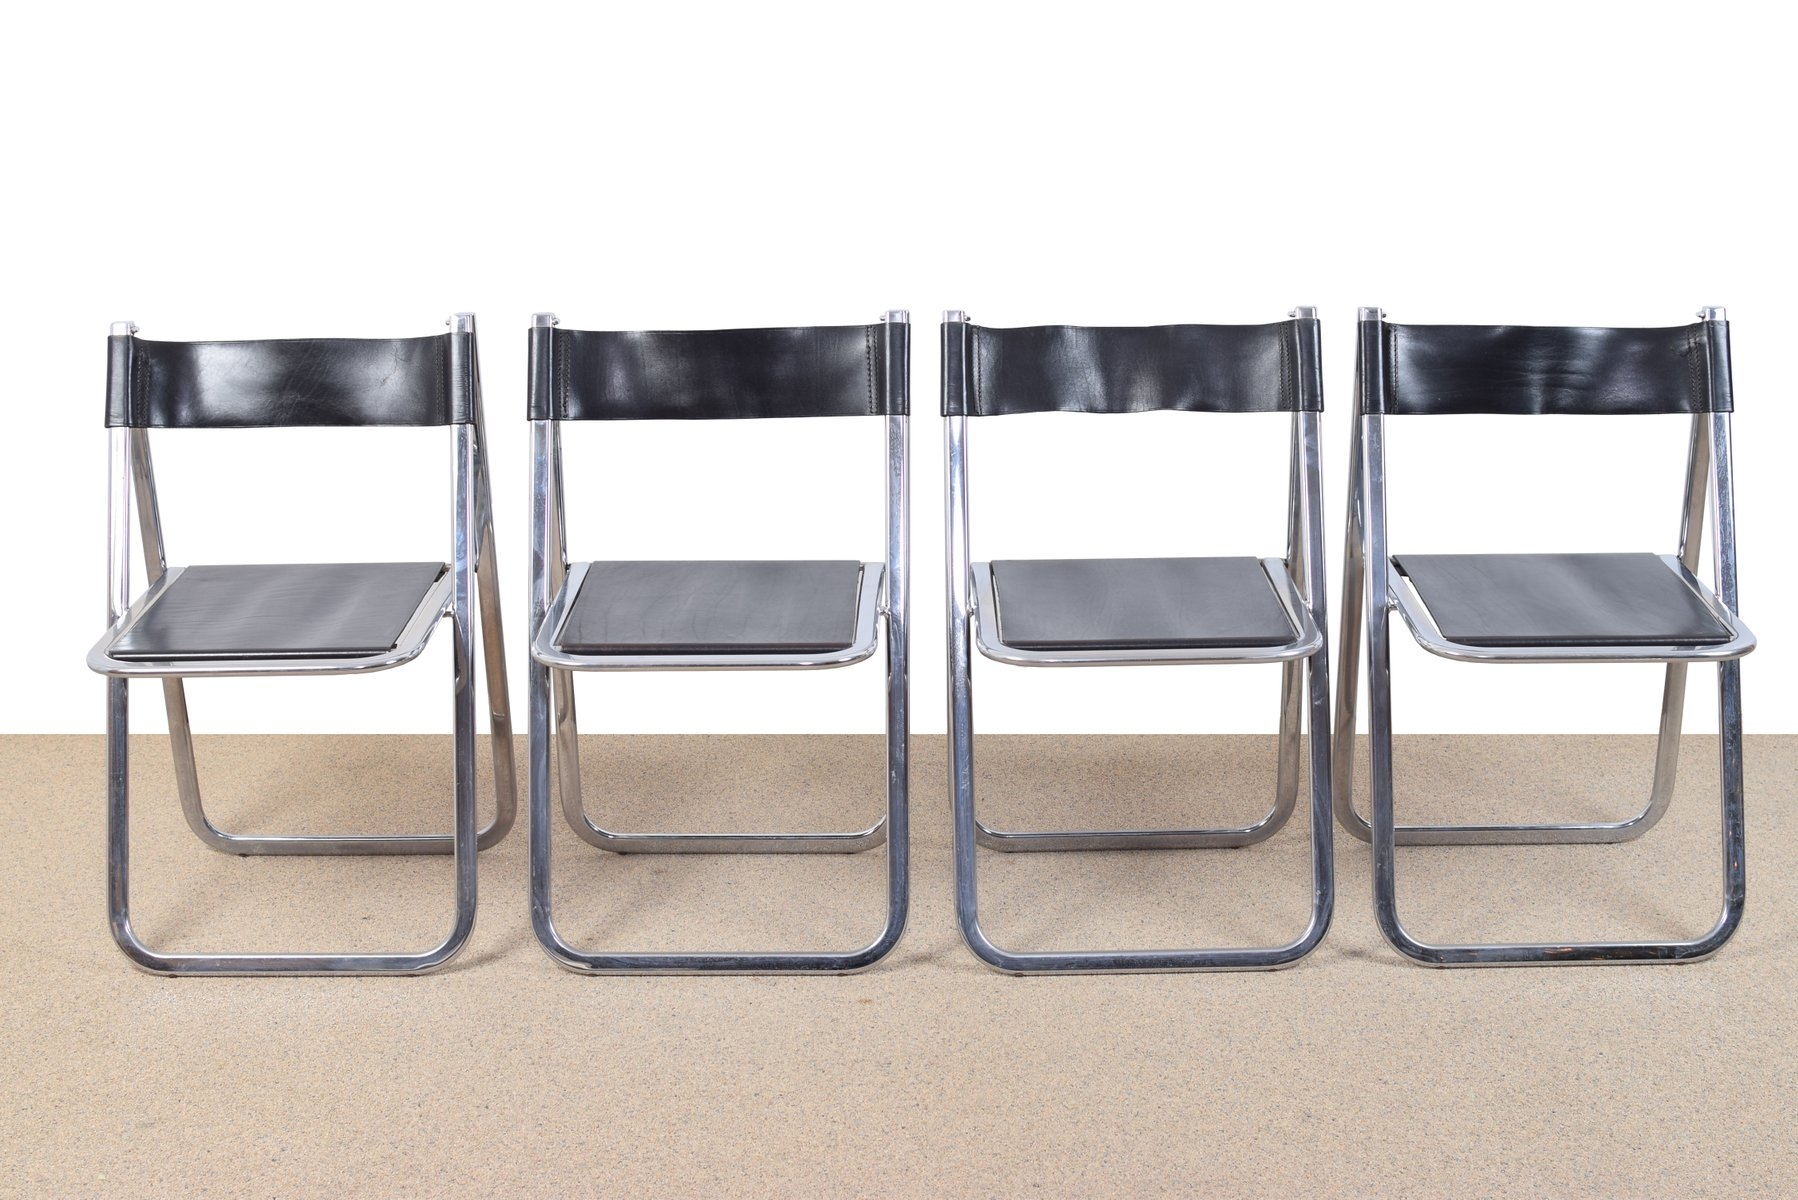 Tamara Folding Chairs from Arben 1970s Set of 4 for sale at Pamono